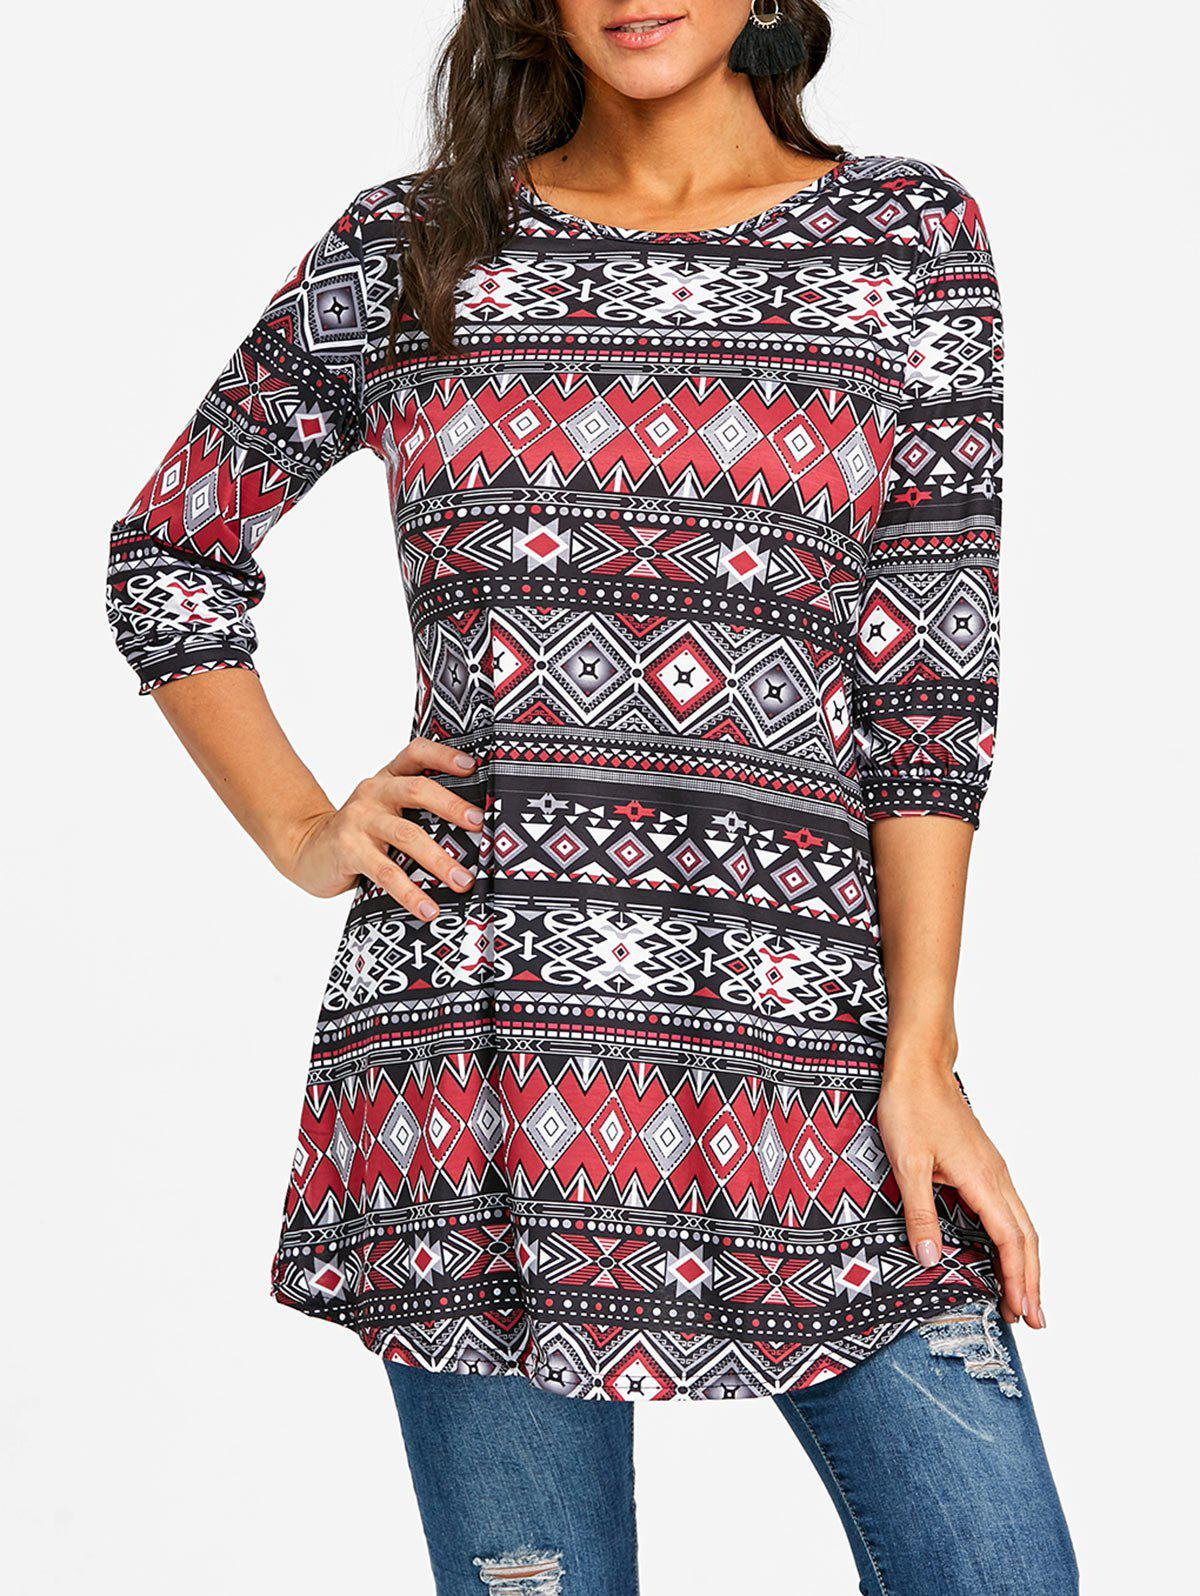 Hot Argyle Ethnic Print Swing Tunic Tee